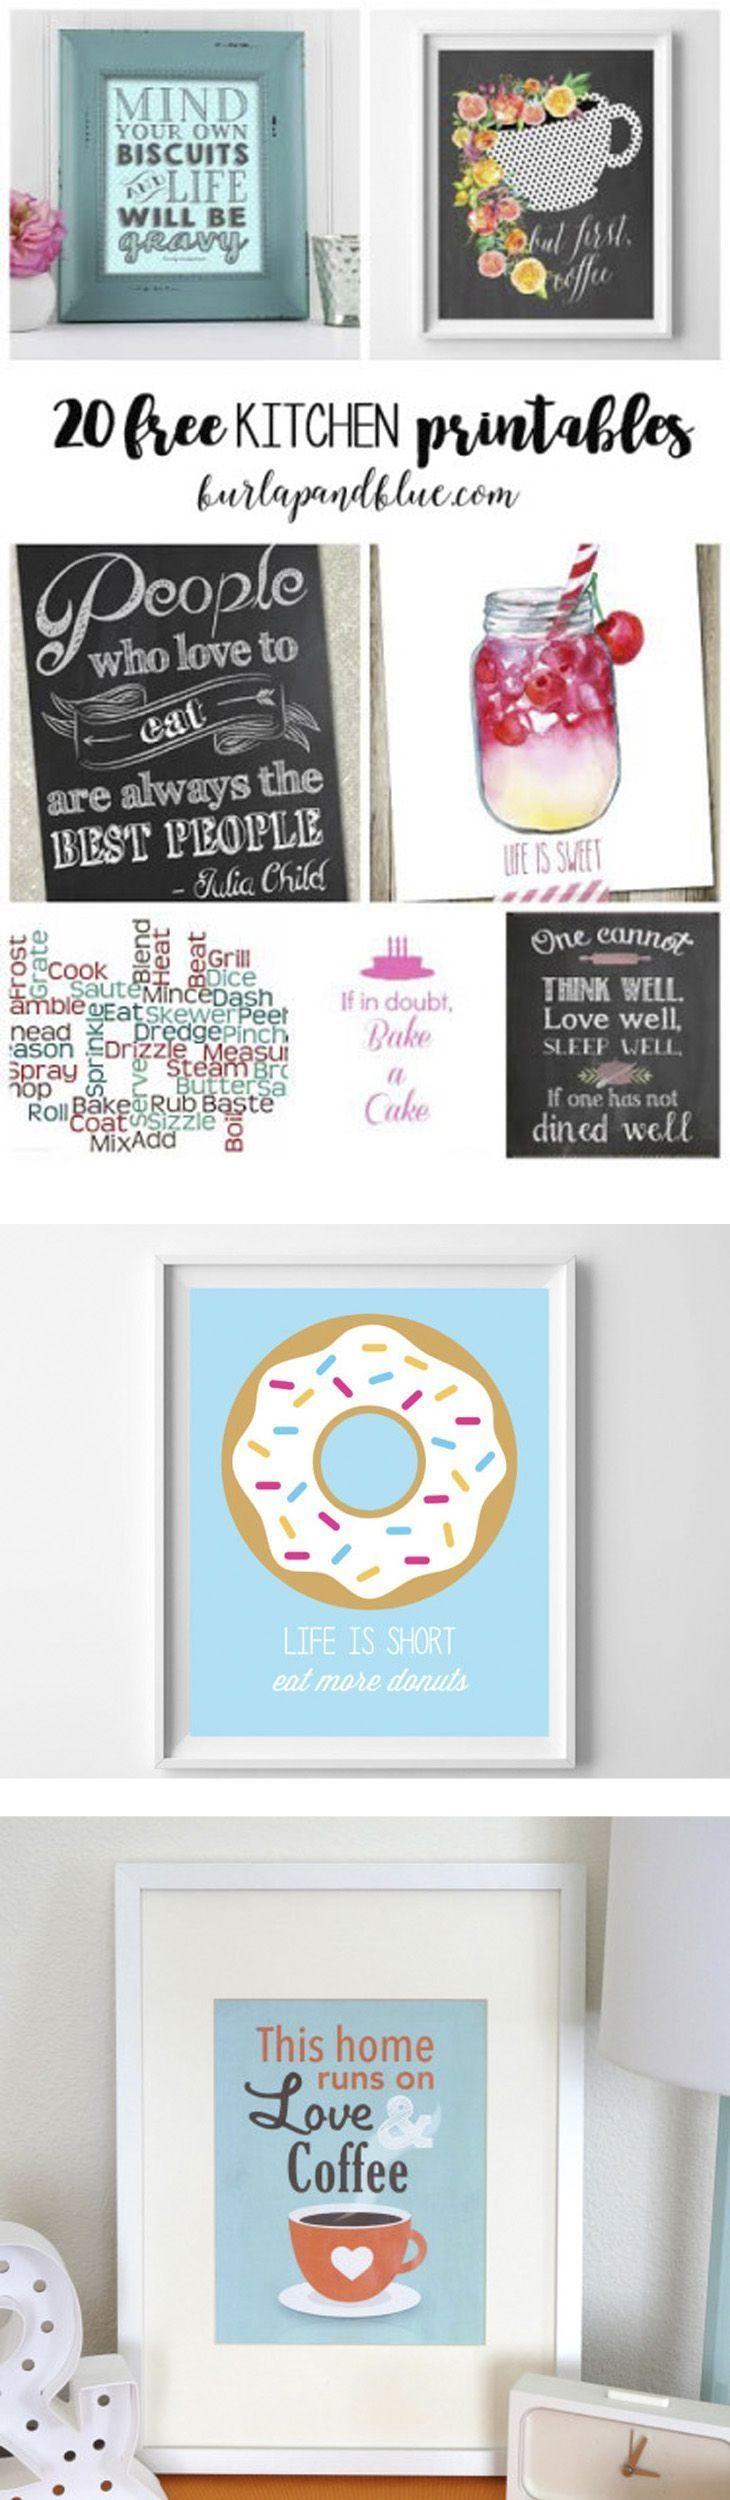 Best 20+ Kitchen Art Ideas On Pinterest—No Signup Required Intended For Midnight Italian Plates Wall Art (View 11 of 20)